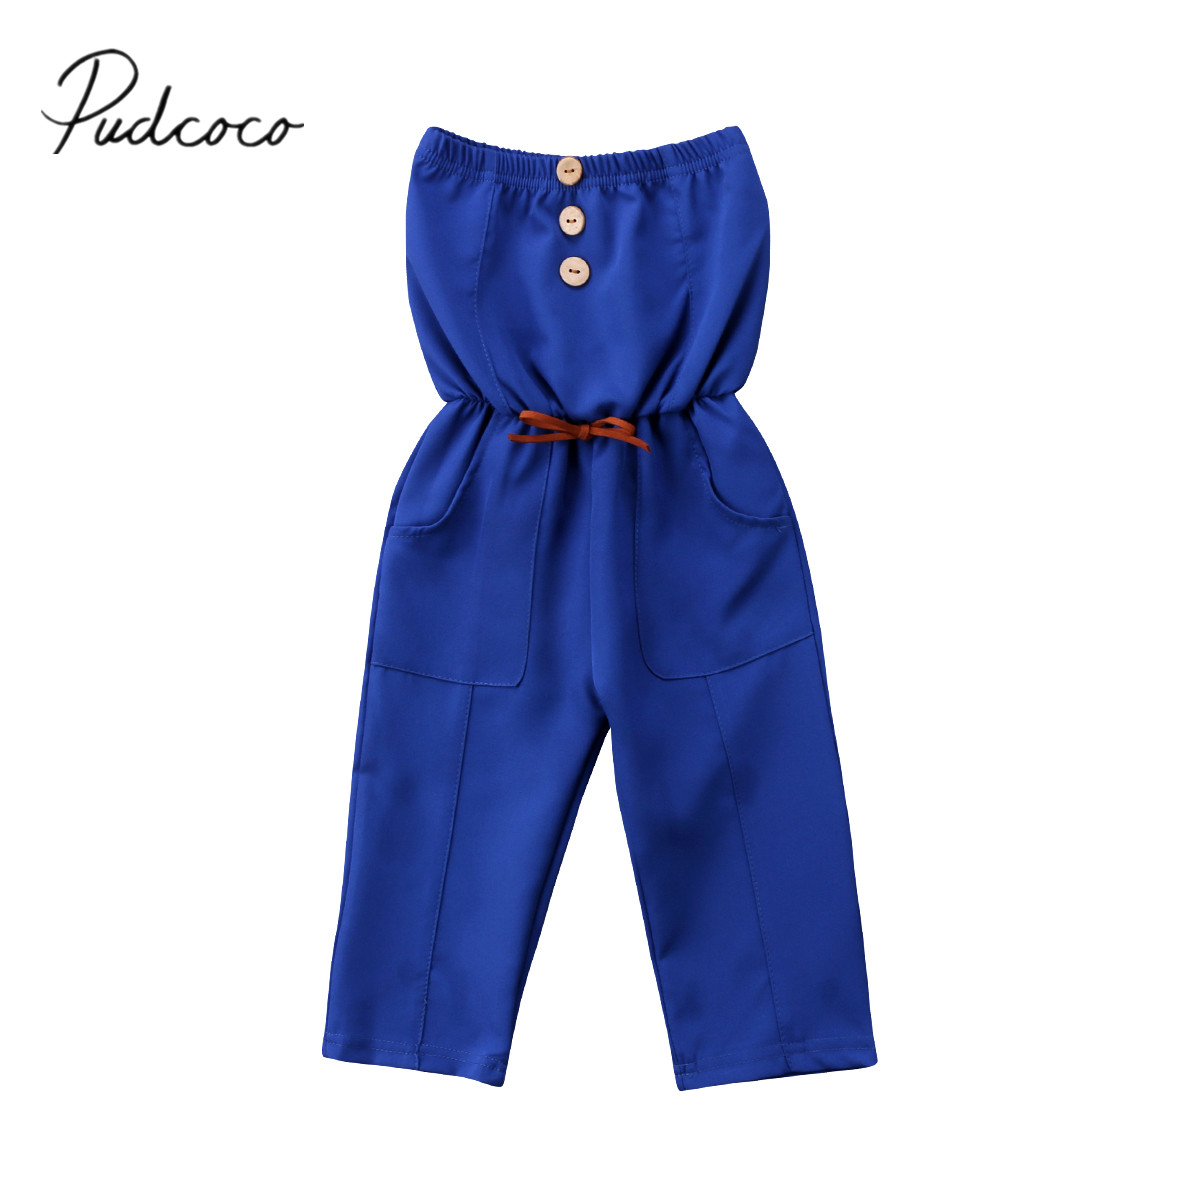 bc537e33d816 Detail Feedback Questions about 2018 Brand New Toddler Infant Child Kids  Baby Girls Strapless Romper Solid Jumpsuit Fashion Summer Outfits Clothing  Overall ...